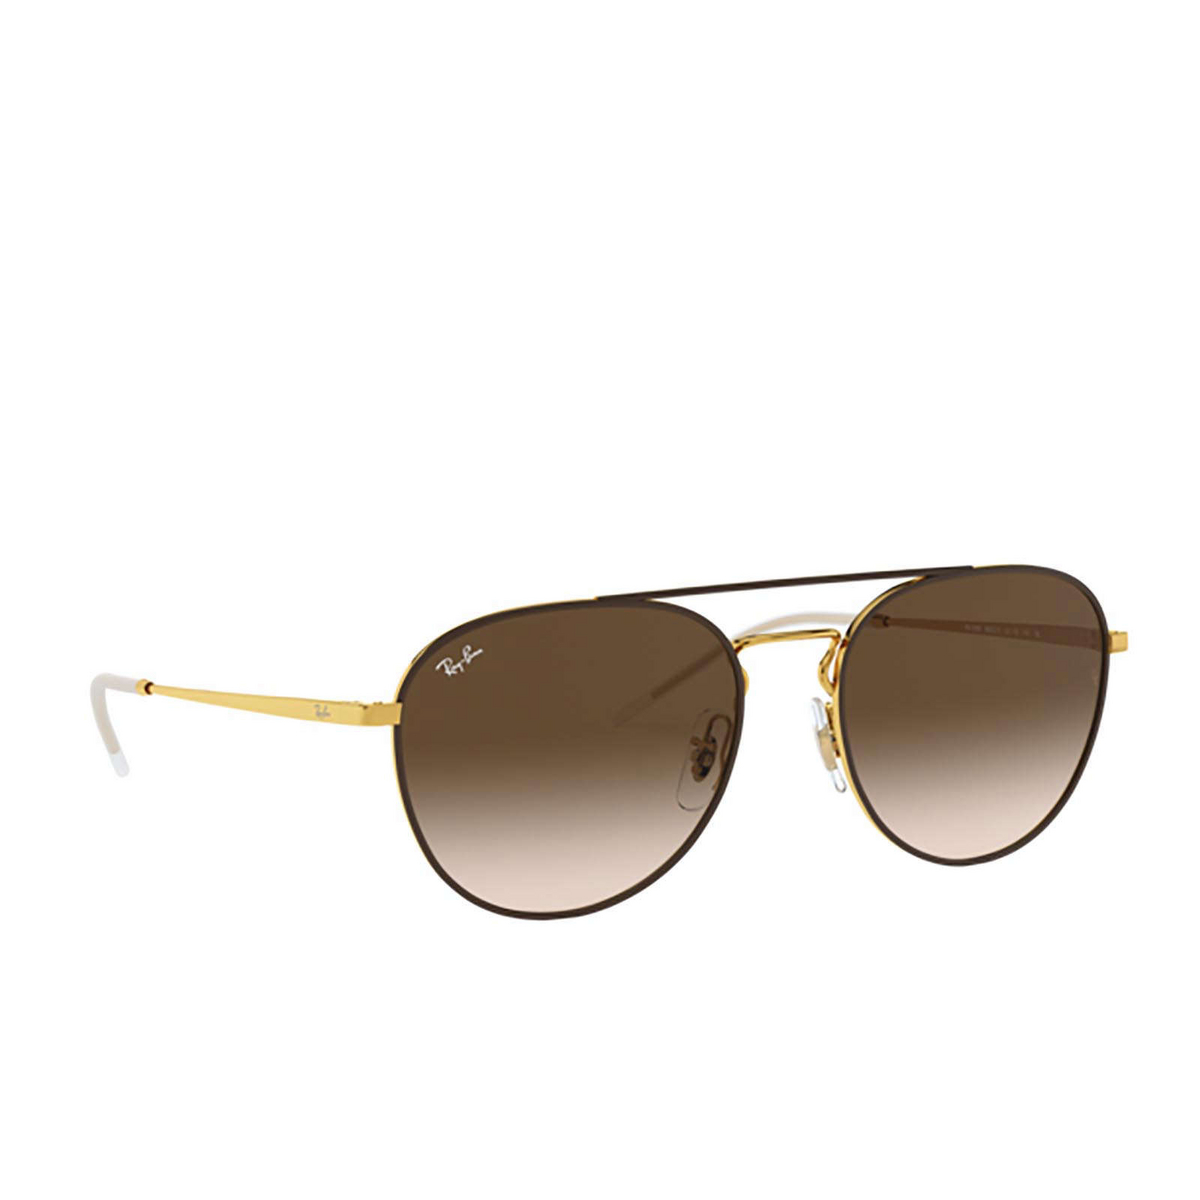 Ray-Ban® Round Sunglasses: RB3589 color Gold Top On Brown 905513 - 2/3.